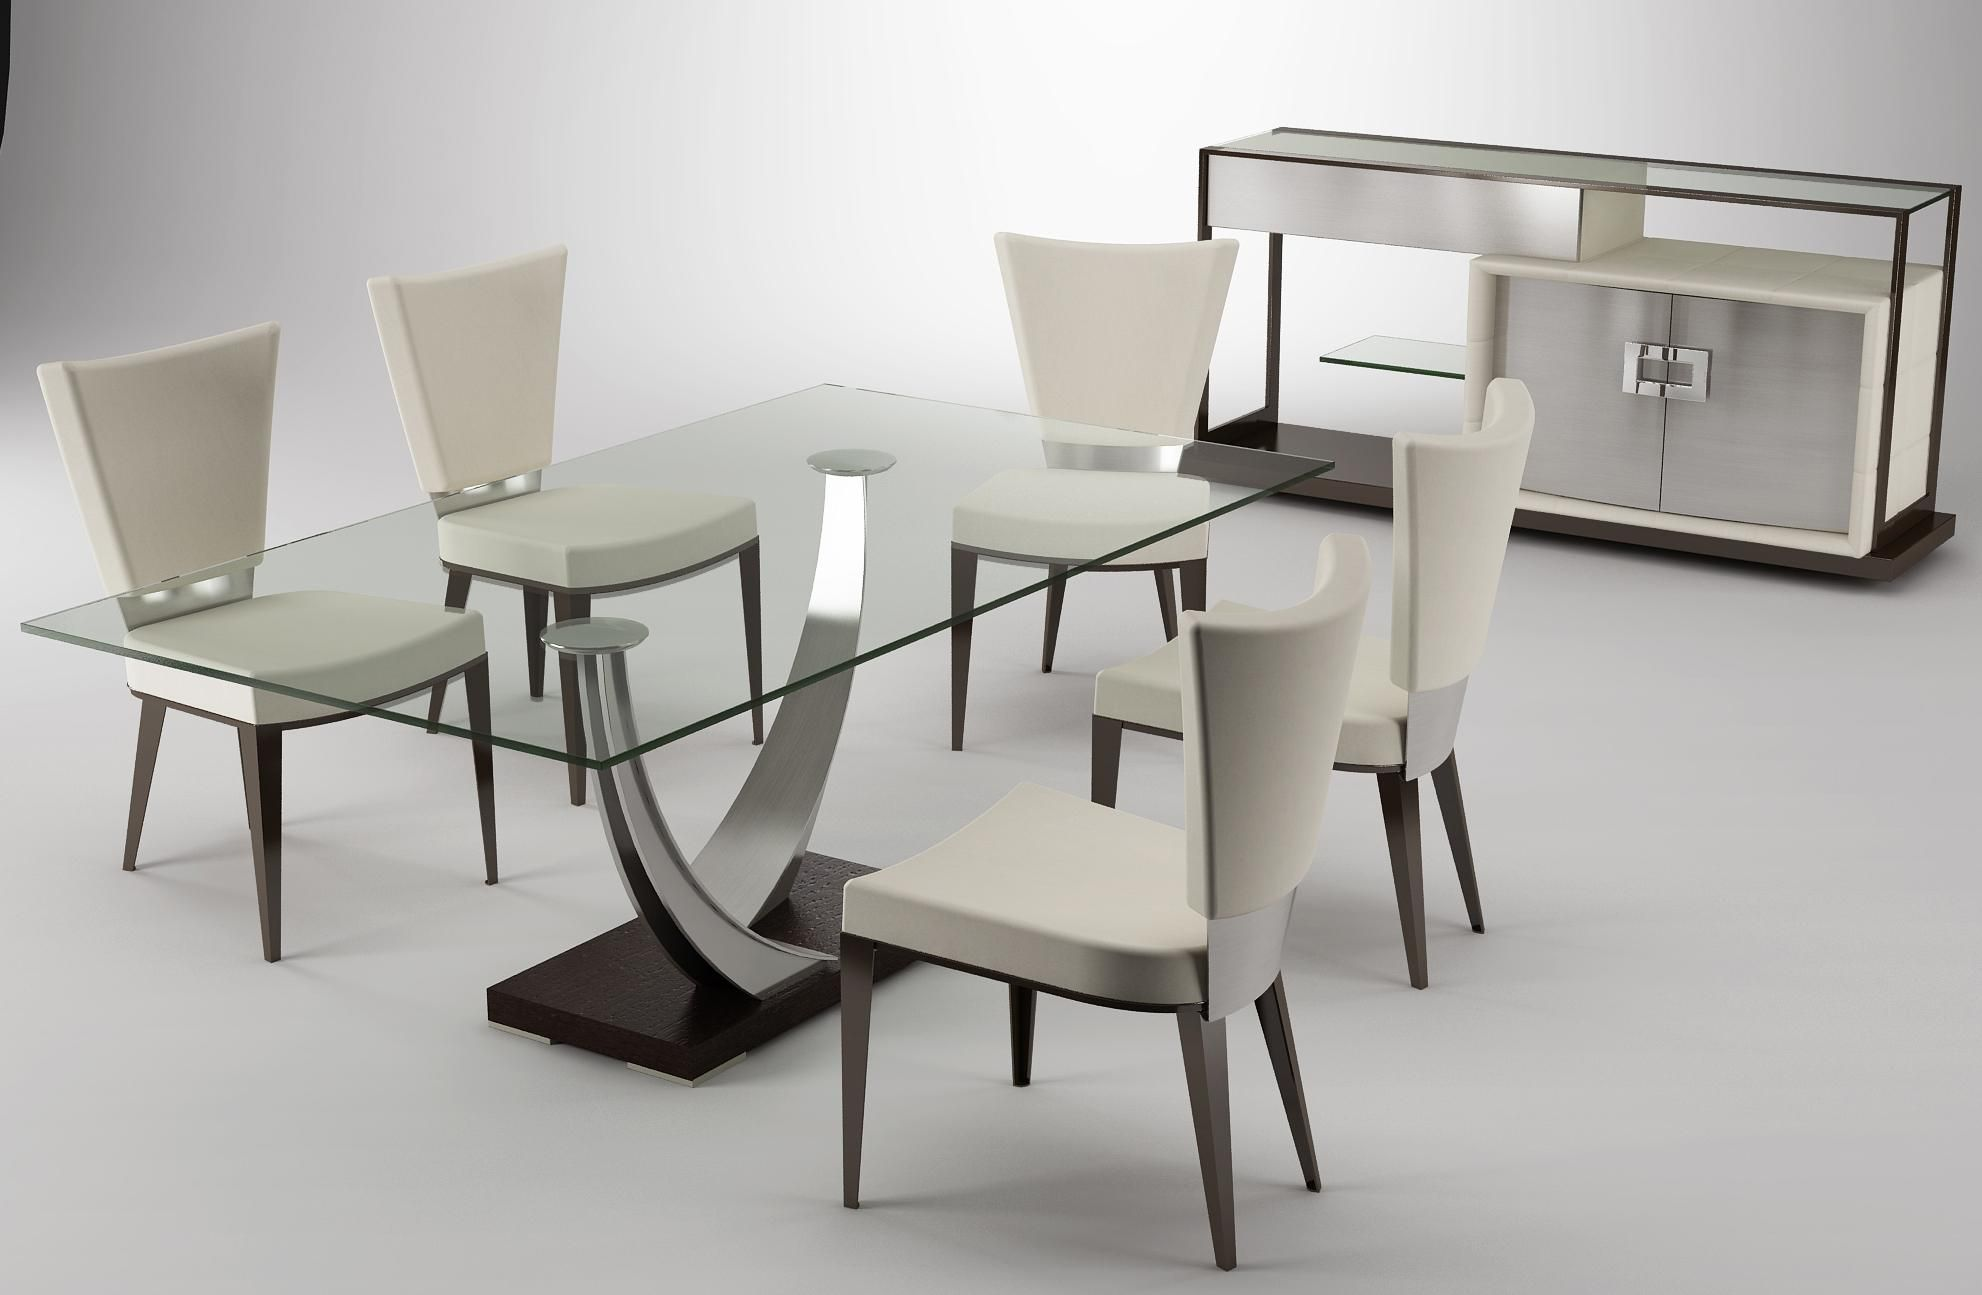 Amazing modern stylish dining room table set designs elite for Contemporary dining room chairs